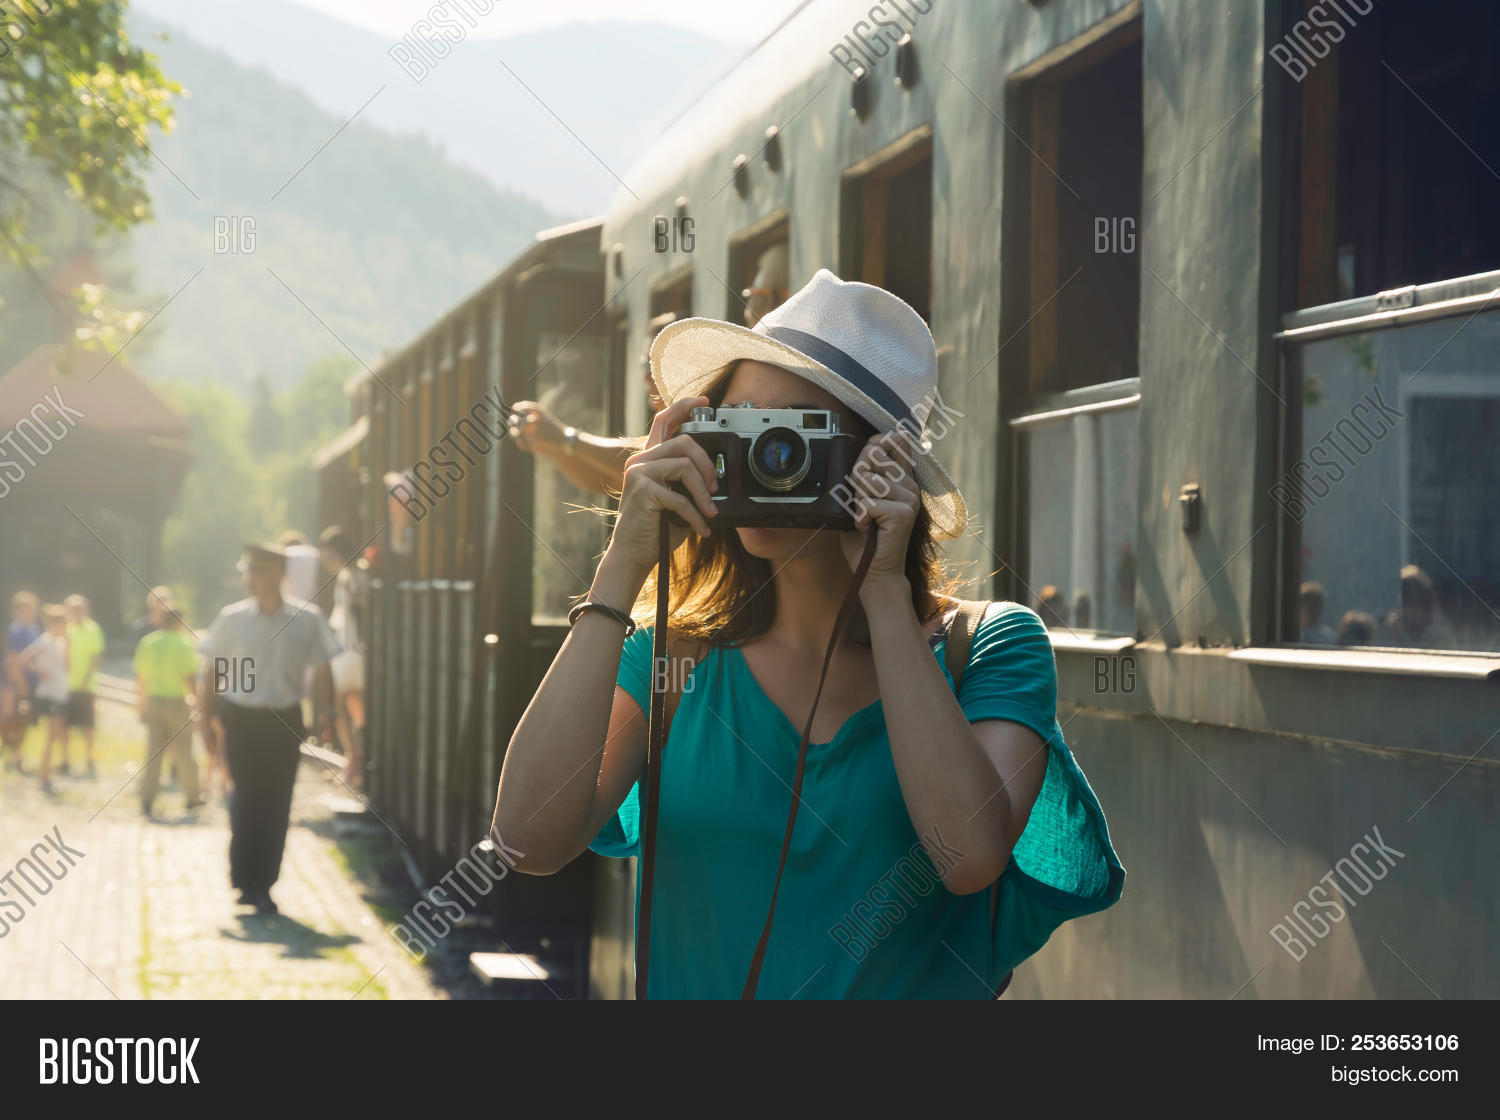 adult,alone,arrivals,arrived,beautiful,camera,casual,caucasian,countryside,day,destination,enjoying,fashioned,girl,happiness,happy,hat,hipster,holiday,journey,luxuriant,movement,old,people,photo,photographer,photography,pretty,railroad,retro,shooting,station,sunlight,sunny,tourism,tourist,train,travel,traveler,traveling,travelling,trip,vacation,vintage,wagon,window,woman,young